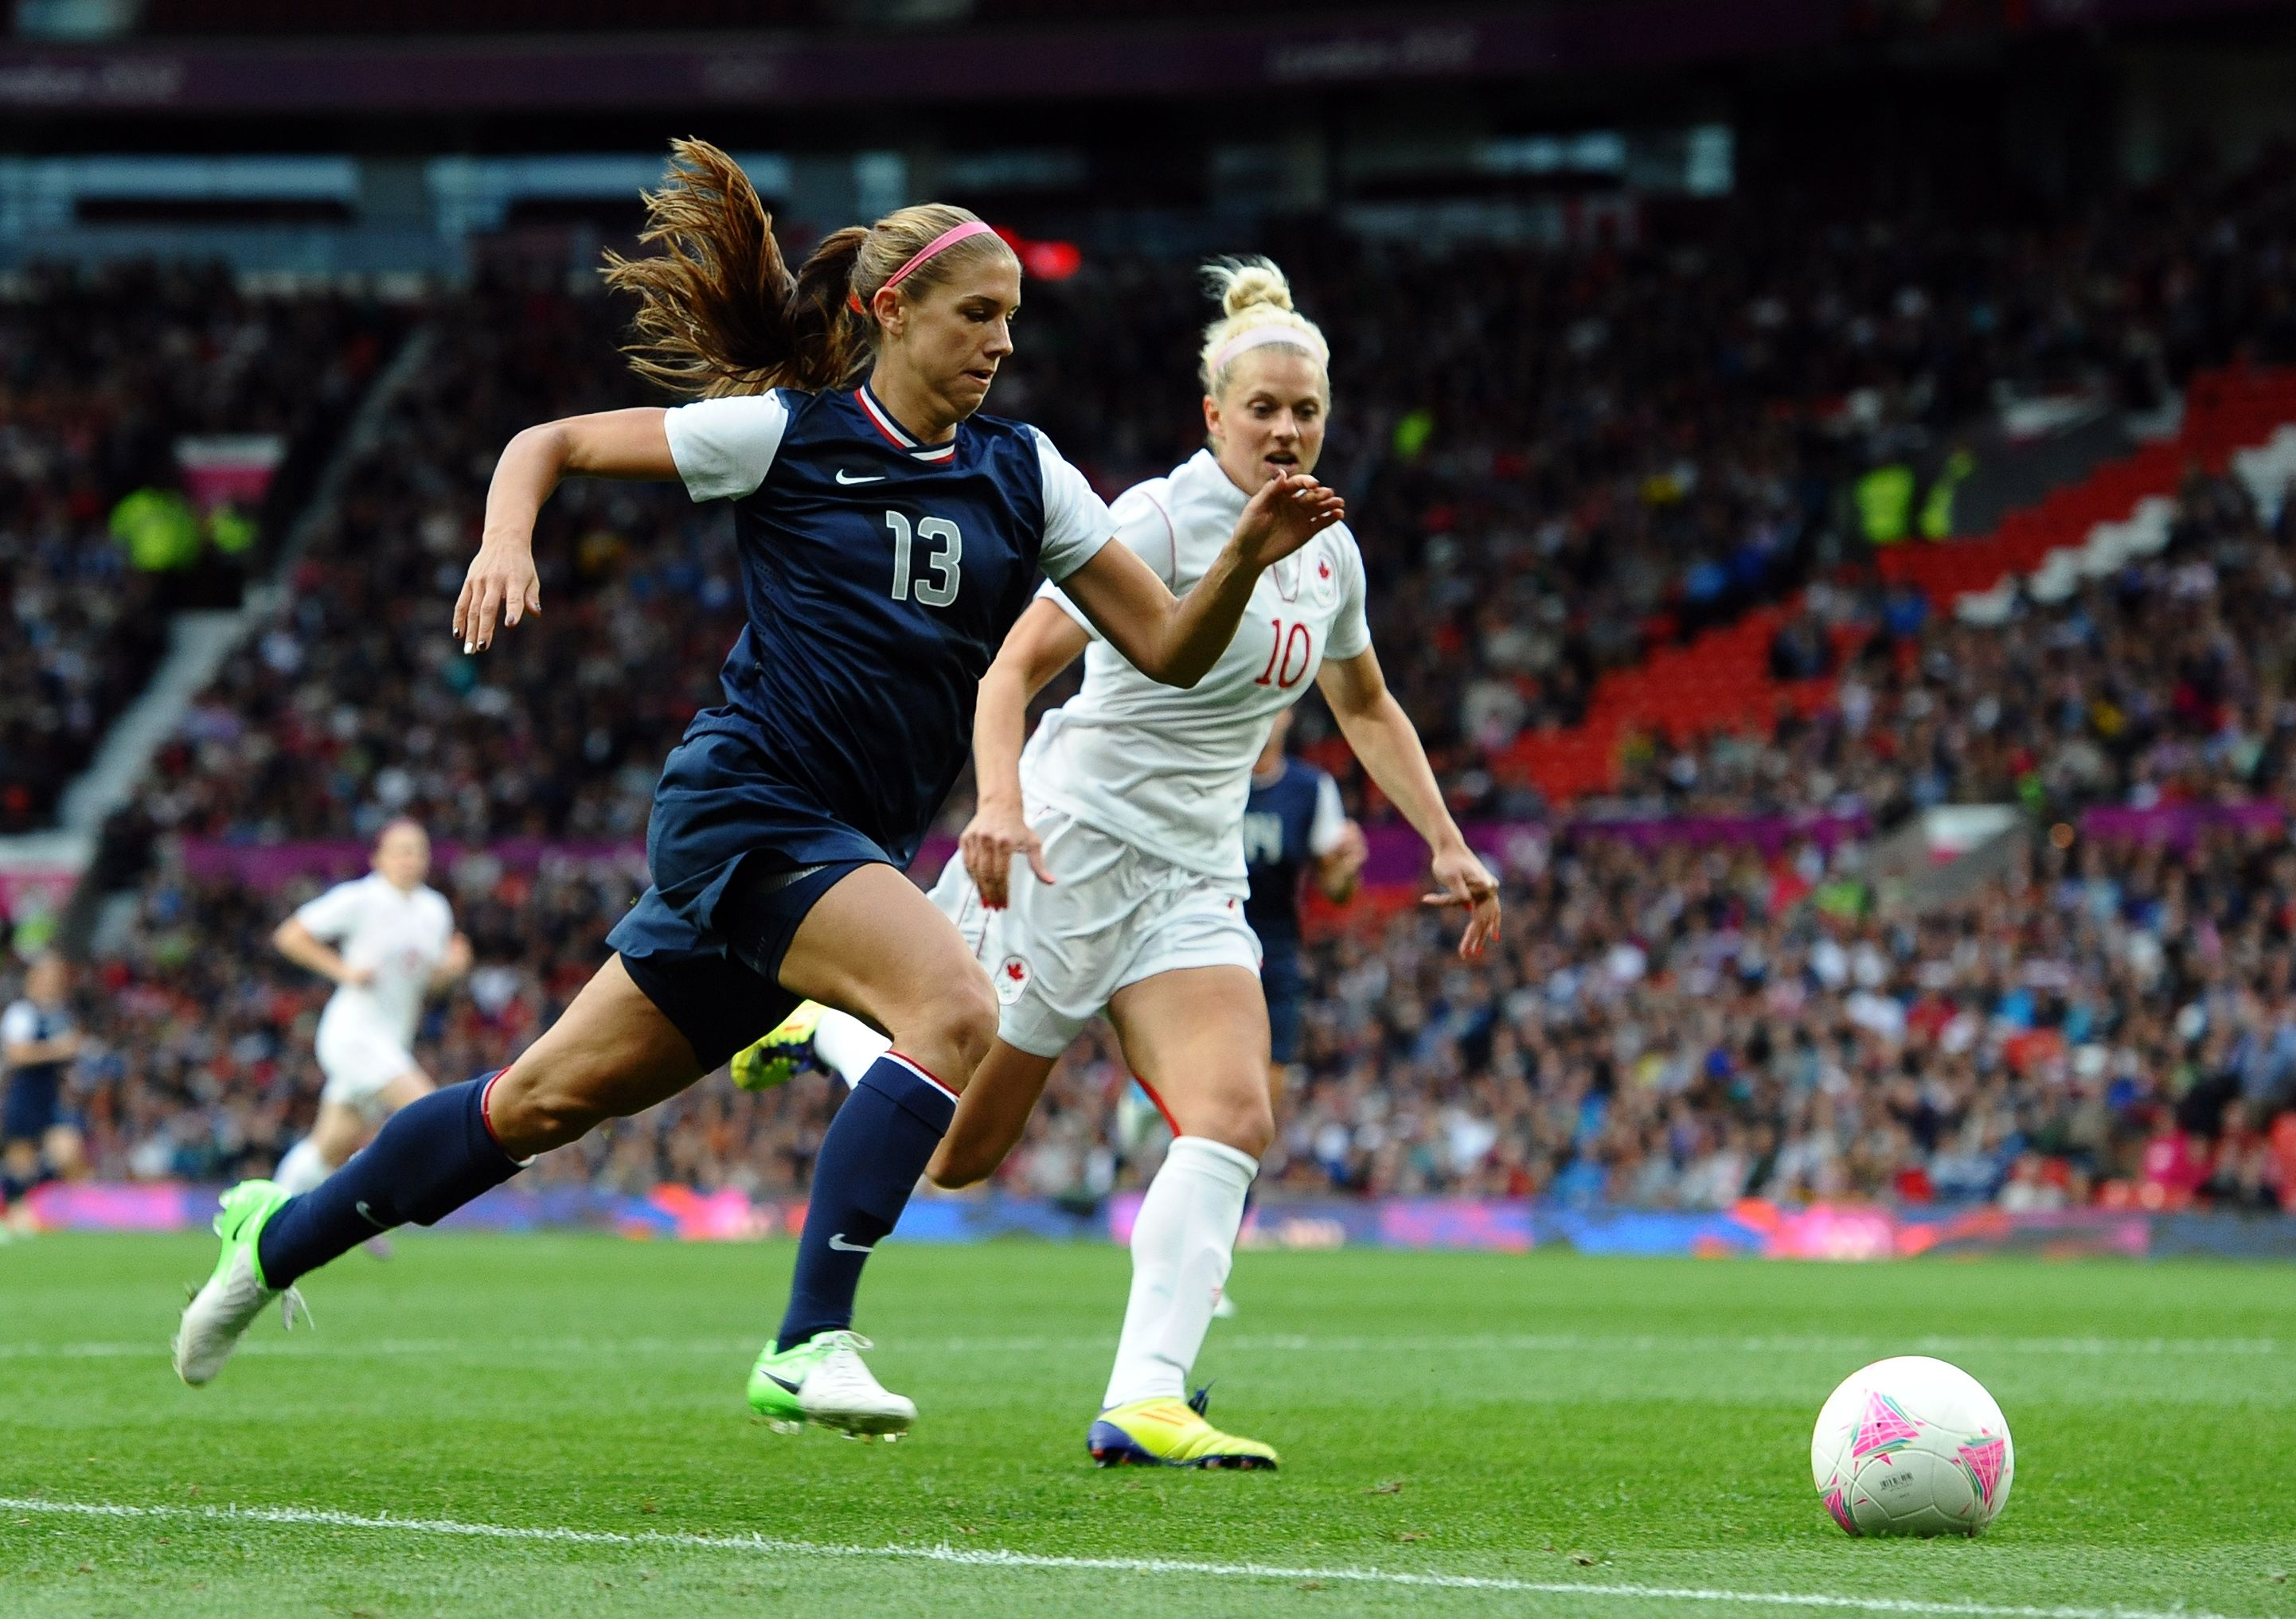 Cal S Morgan Tips Us Women Over Canada In Olympic Soccer Semifinal Soccer Intense Workout Womens Soccer